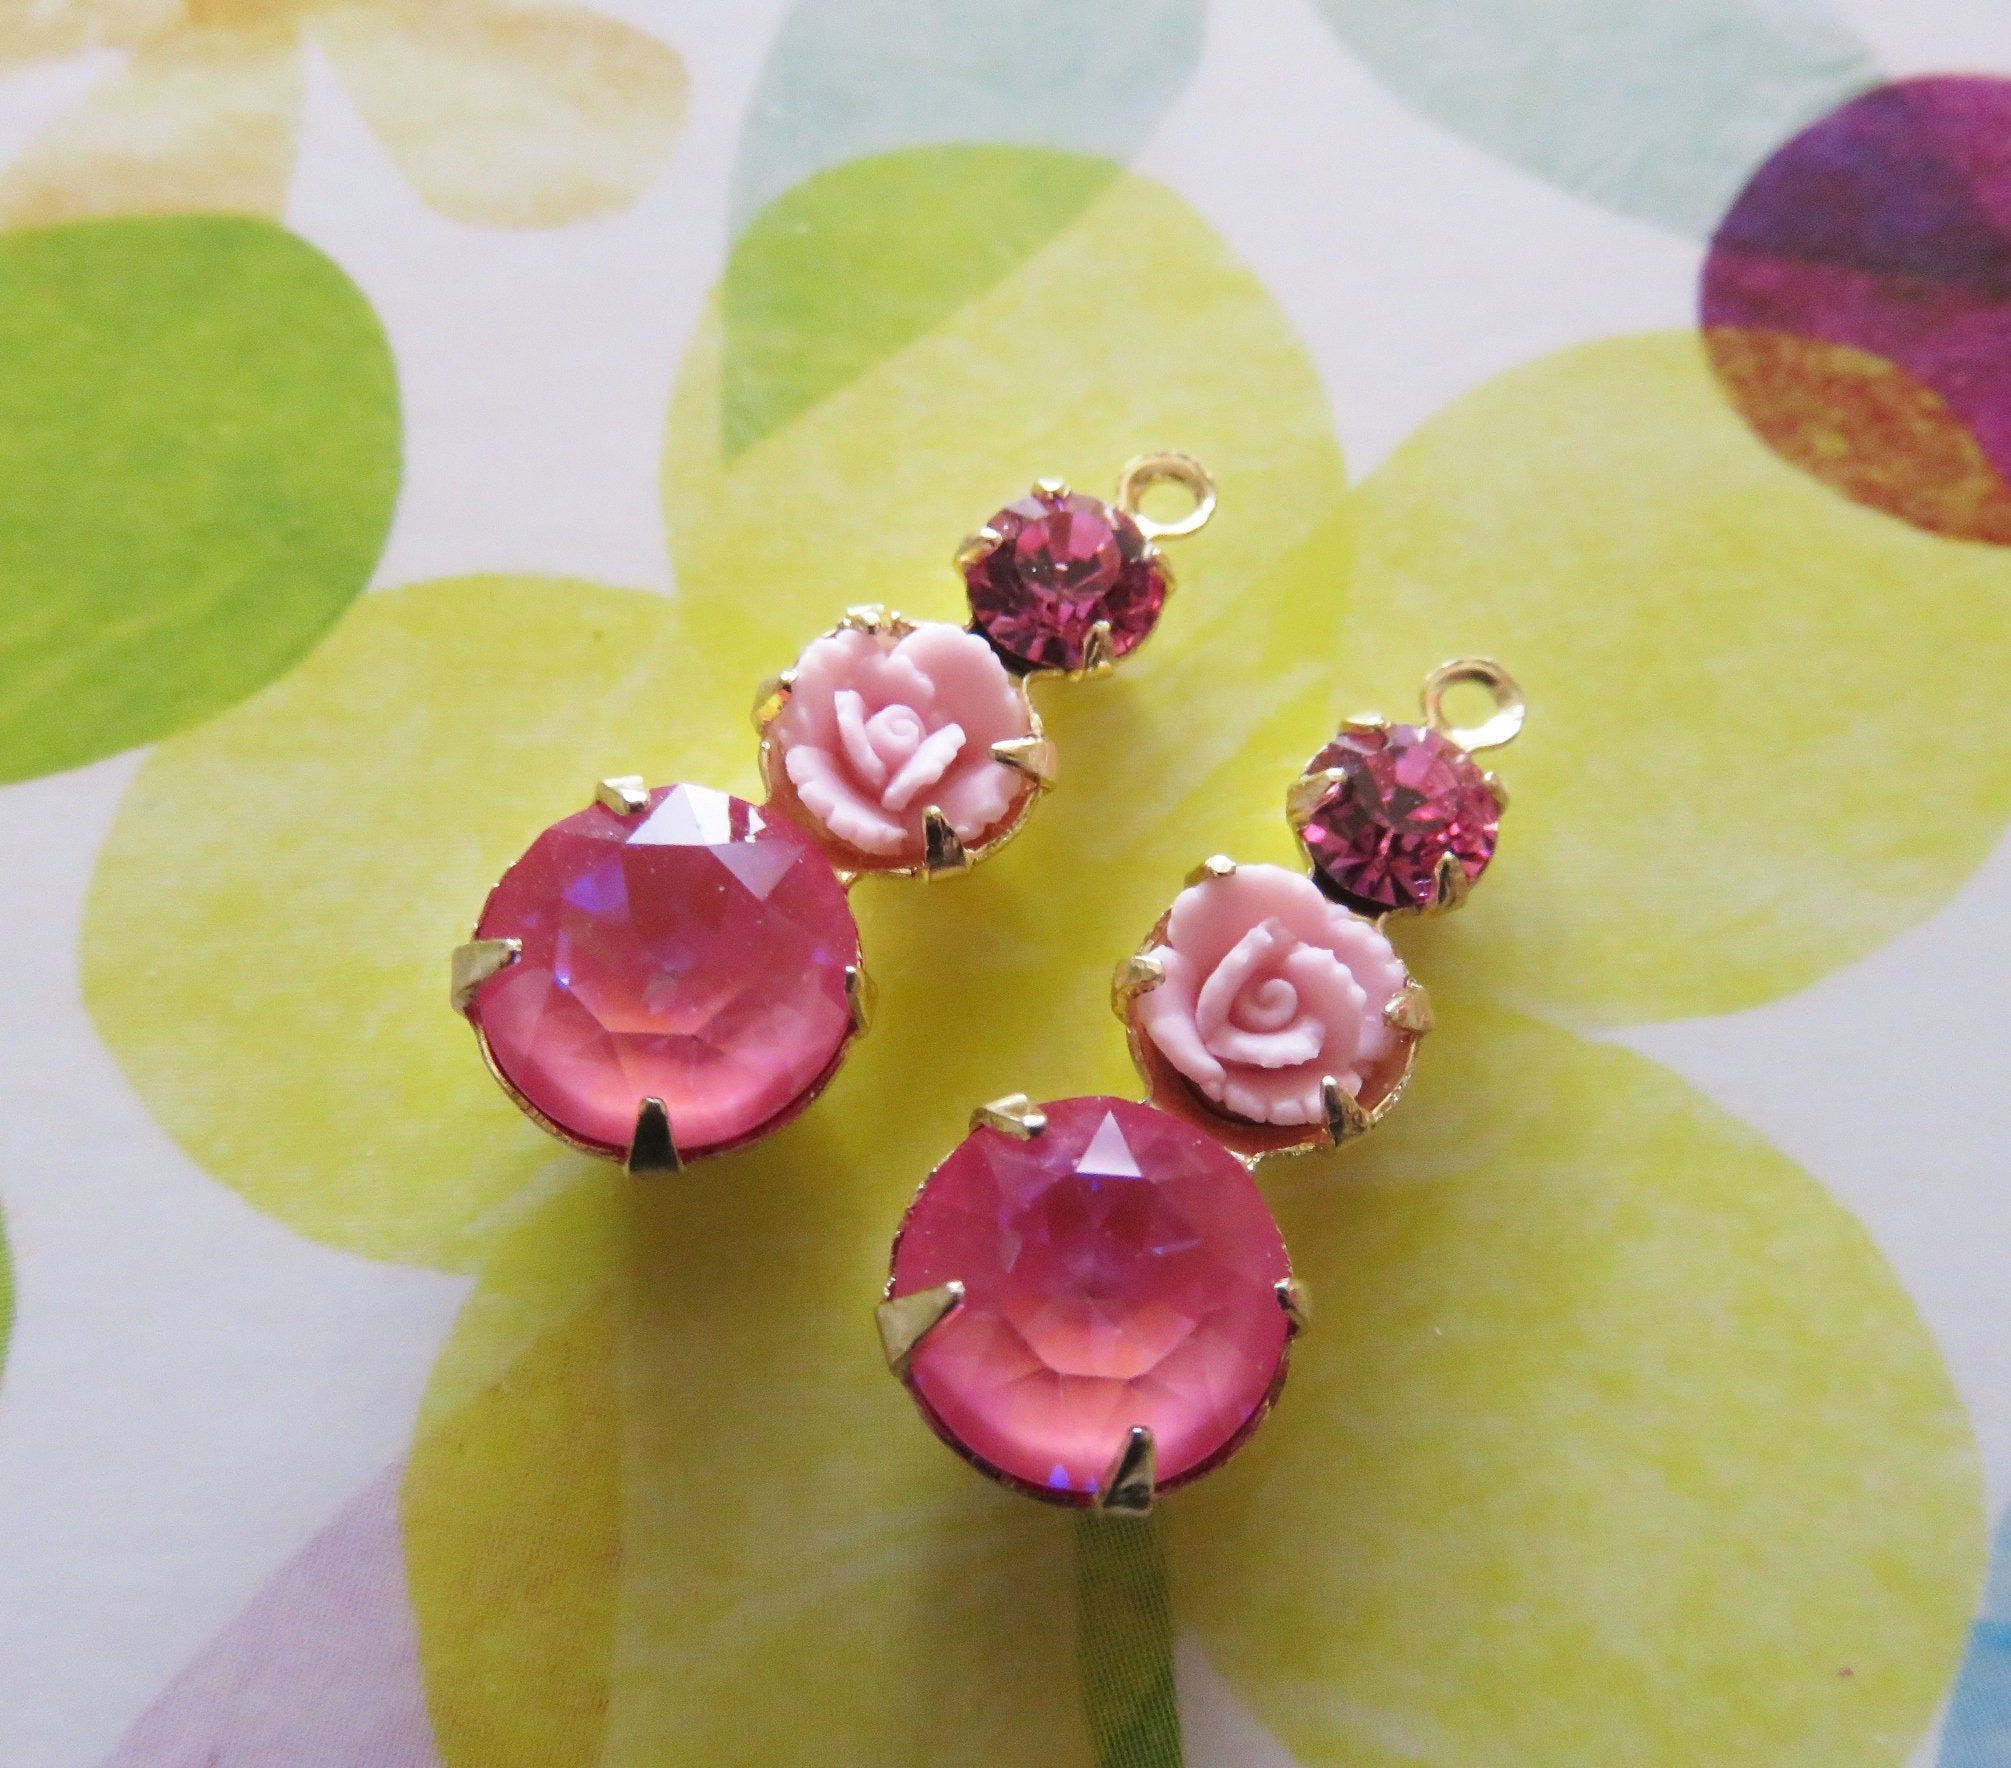 Pretty Vintage Crystal Charms, Triple Set Stones, Vintage Rhinestones Swarovski Pink Porcelain Rose Earrings Dangle Settings Charms DIY #vintagerhinestone